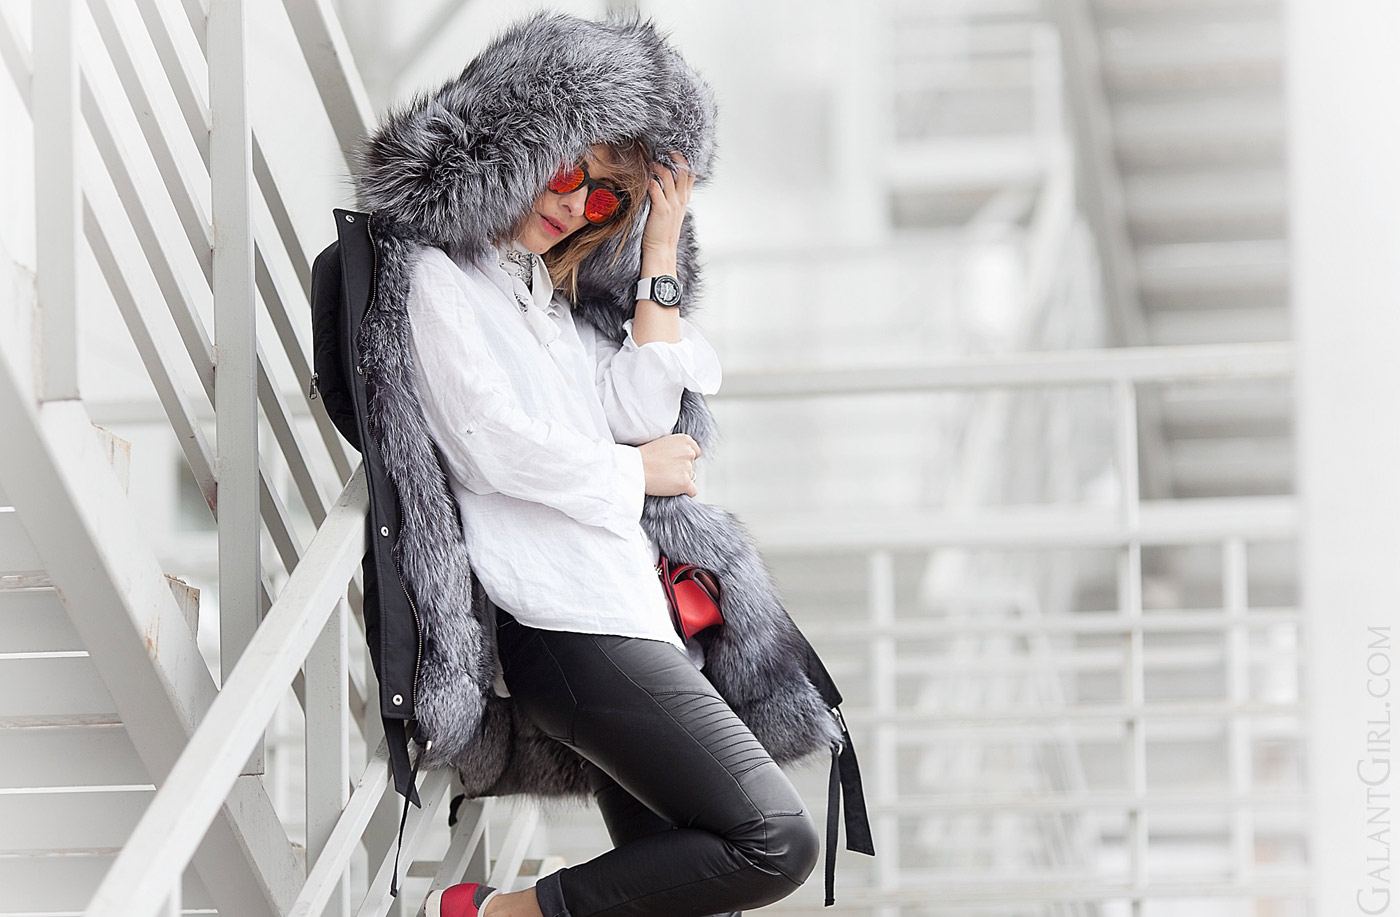 fur-parka-outfit-for-winter-by-street-style-fashion-blogger-galant-girl